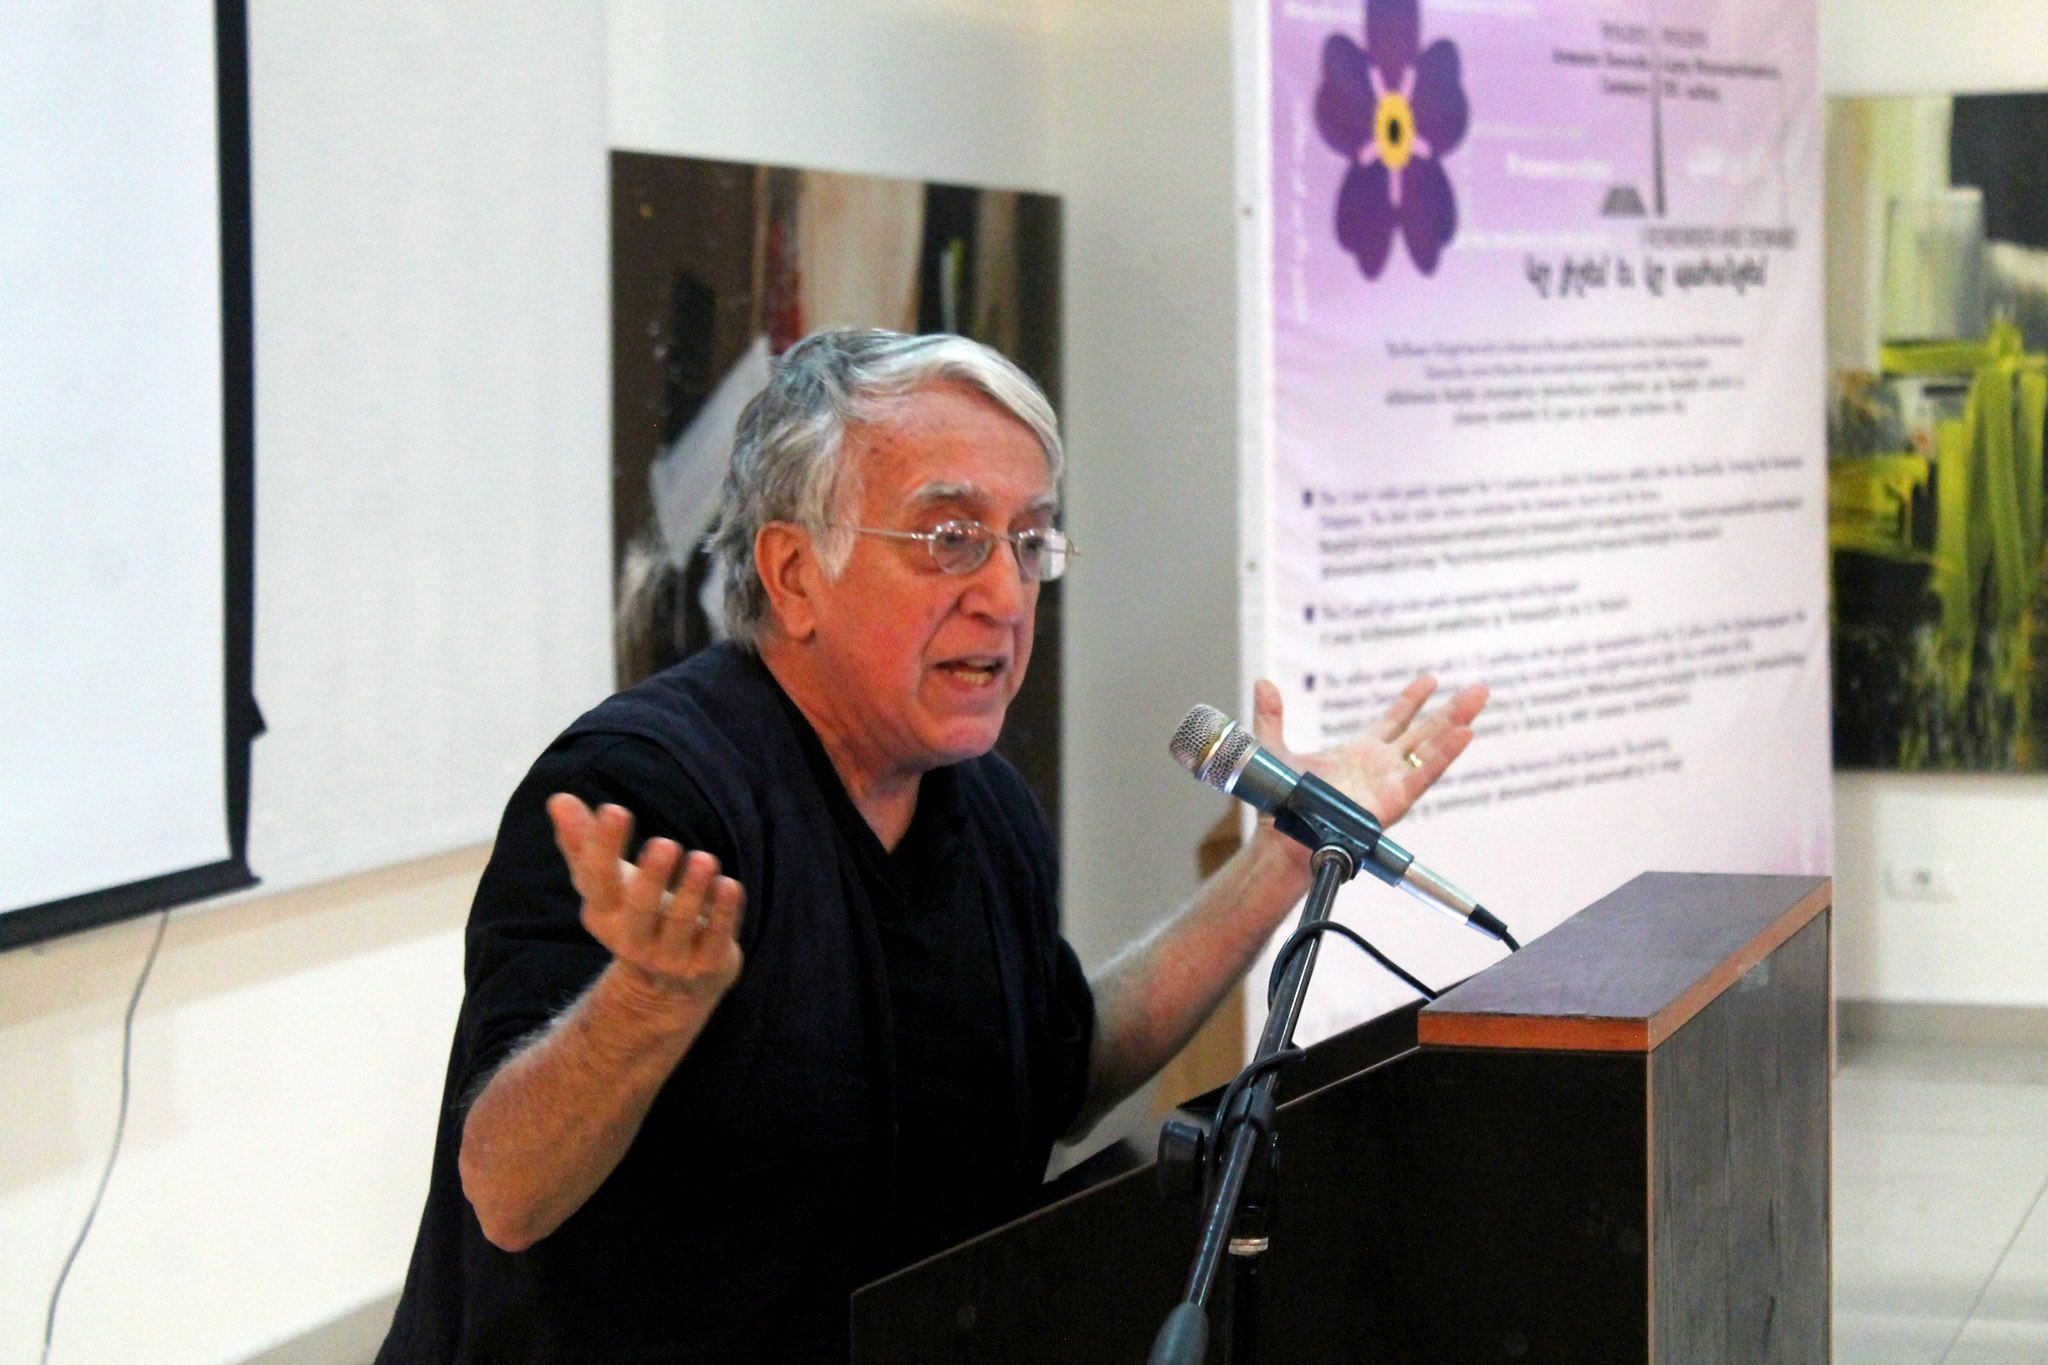 David Barsamian giving a lecture called 'The Twilight of Capitalism' at a ZOMTalks event in Lebanon hosted by [[Armenian Revolutionary Federation|ARF's]] Zavarian Student Association on February 23, 2016.<ref>[http://www.aztagdaily.com/archives/281846 Reference from Aztag Daily, the daily newspaper of the Lebanese Armenian community.]</ref>